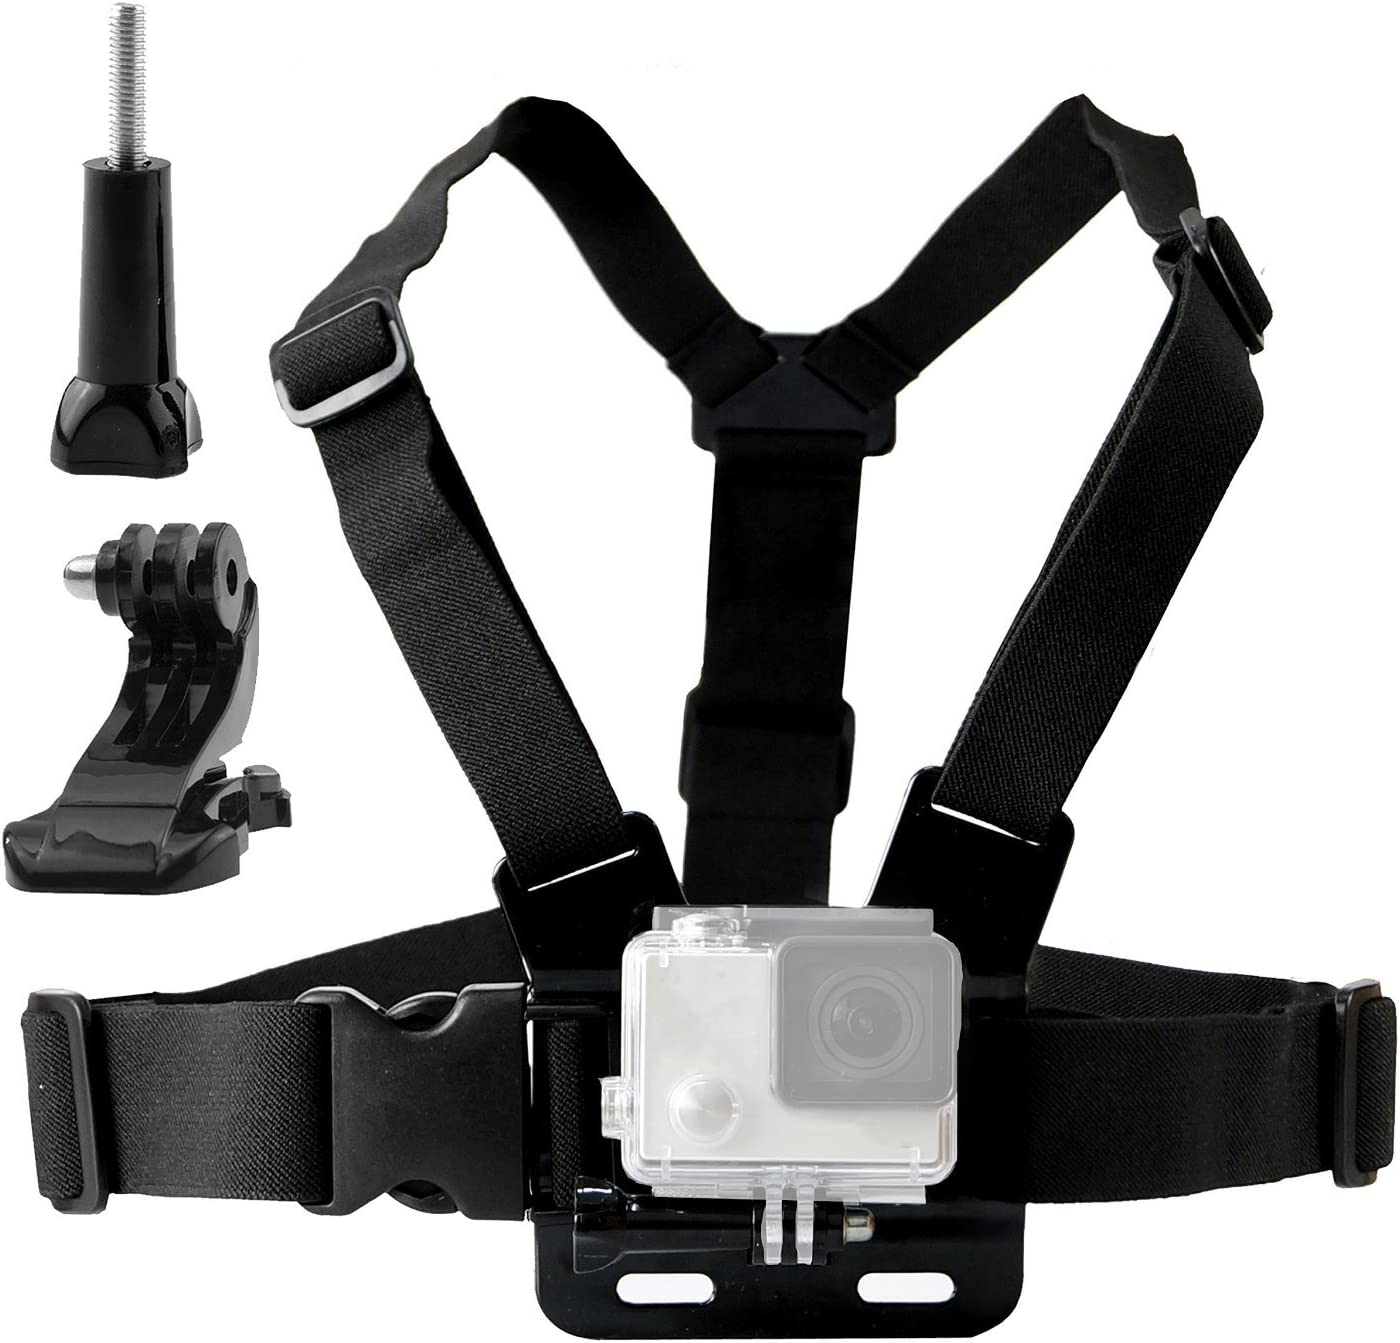 Navitech Action Camera Backpack with Integrated Chest Strap Compatible with The Nilox Mini UP Mini WI-FI Action Camera